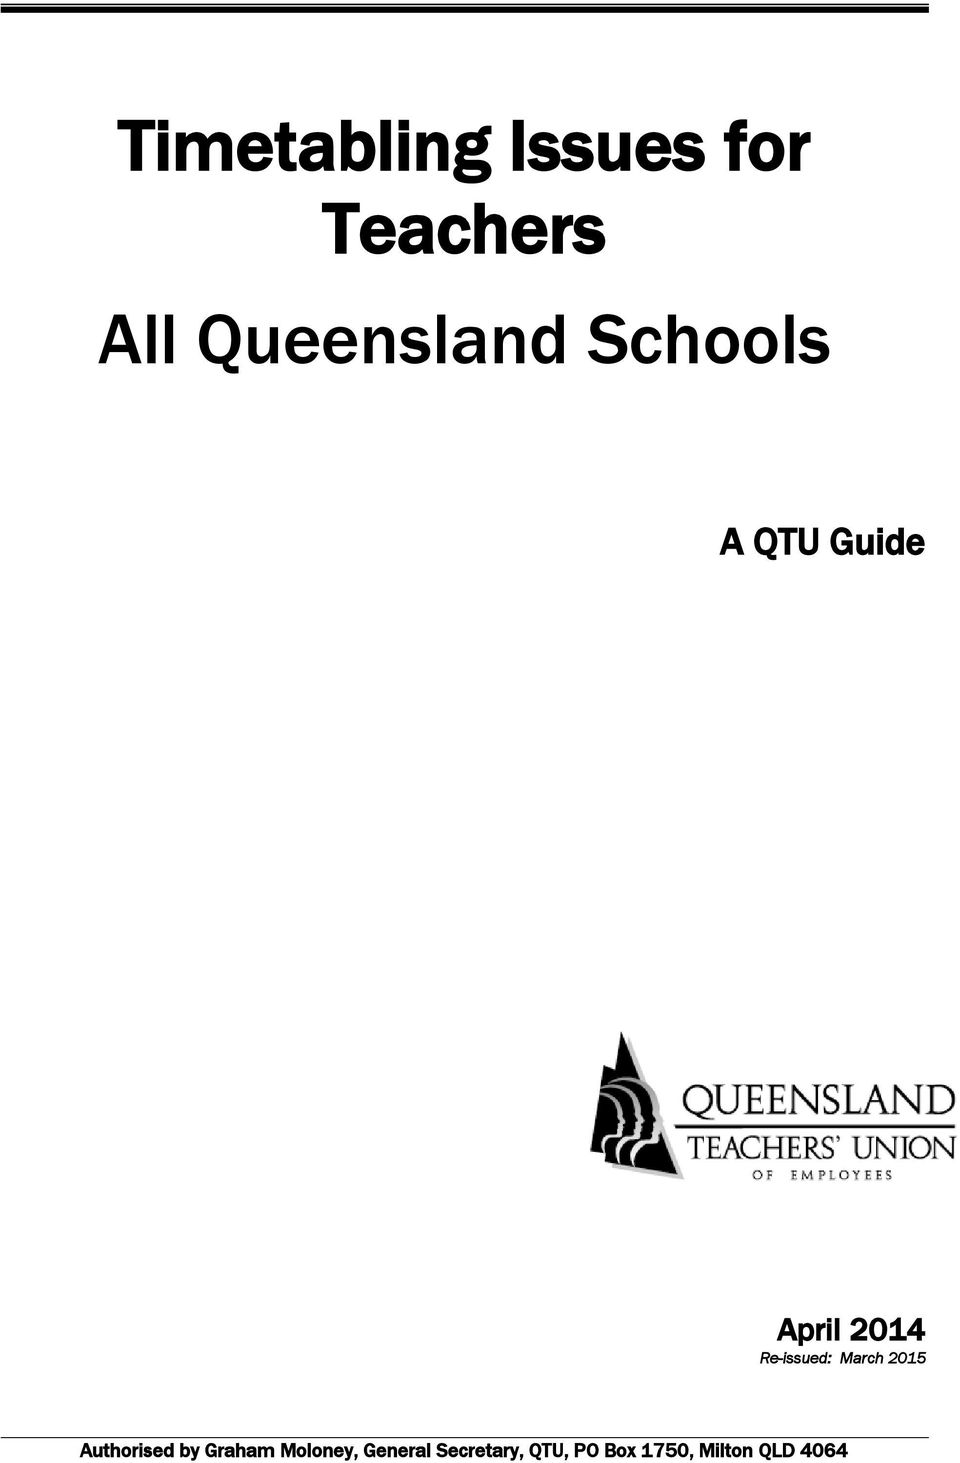 Timetabling Issues for Teachers All Queensland Schools - PDF